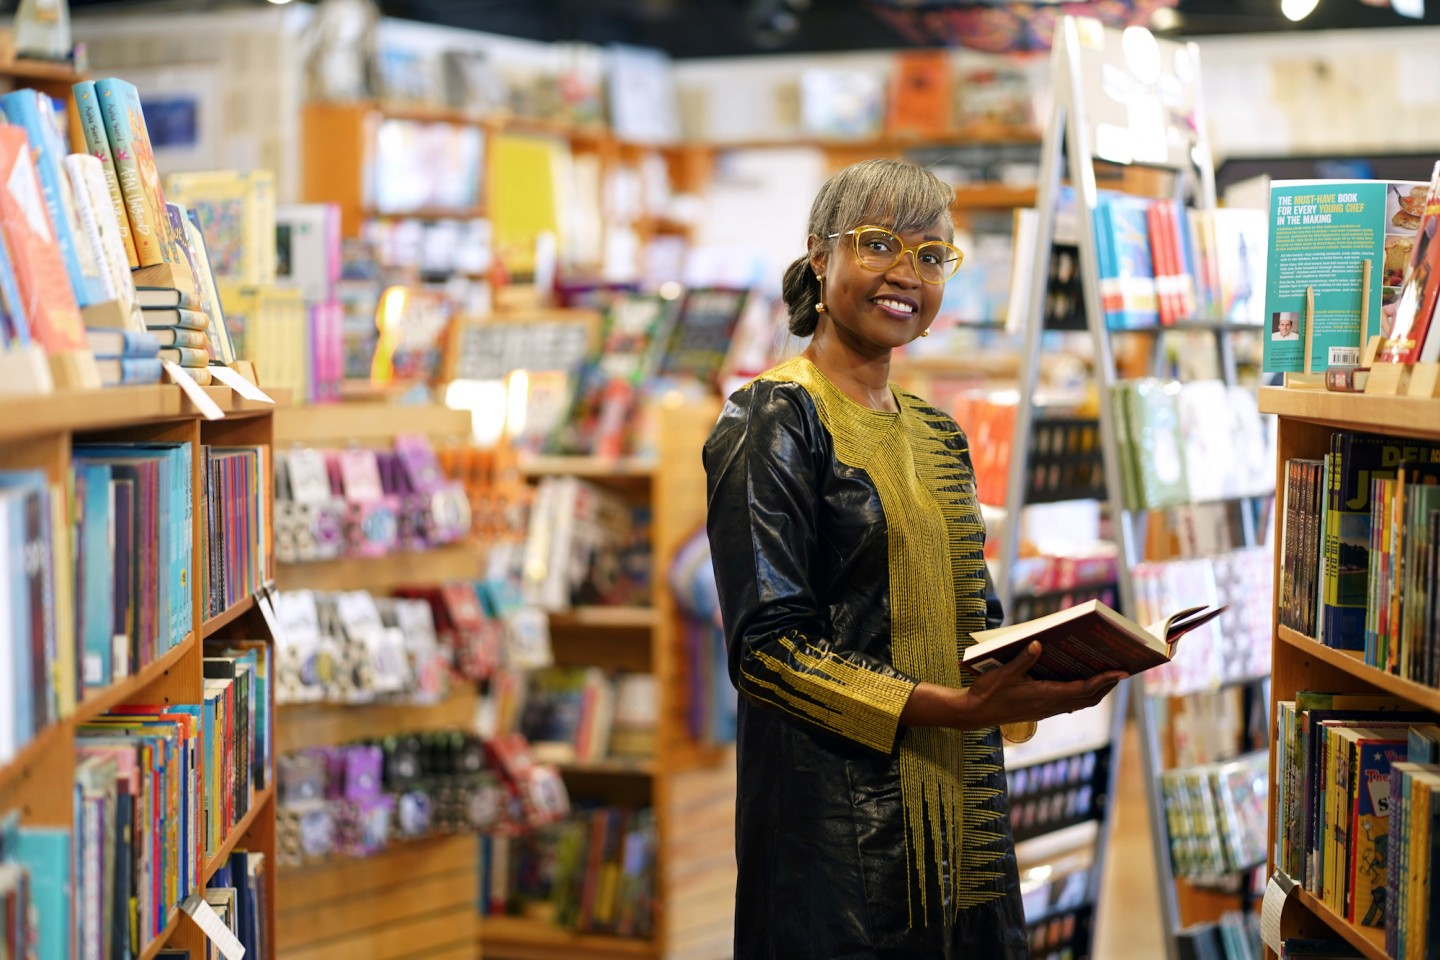 A woman stands in an aisle in a bookstore holding a book.